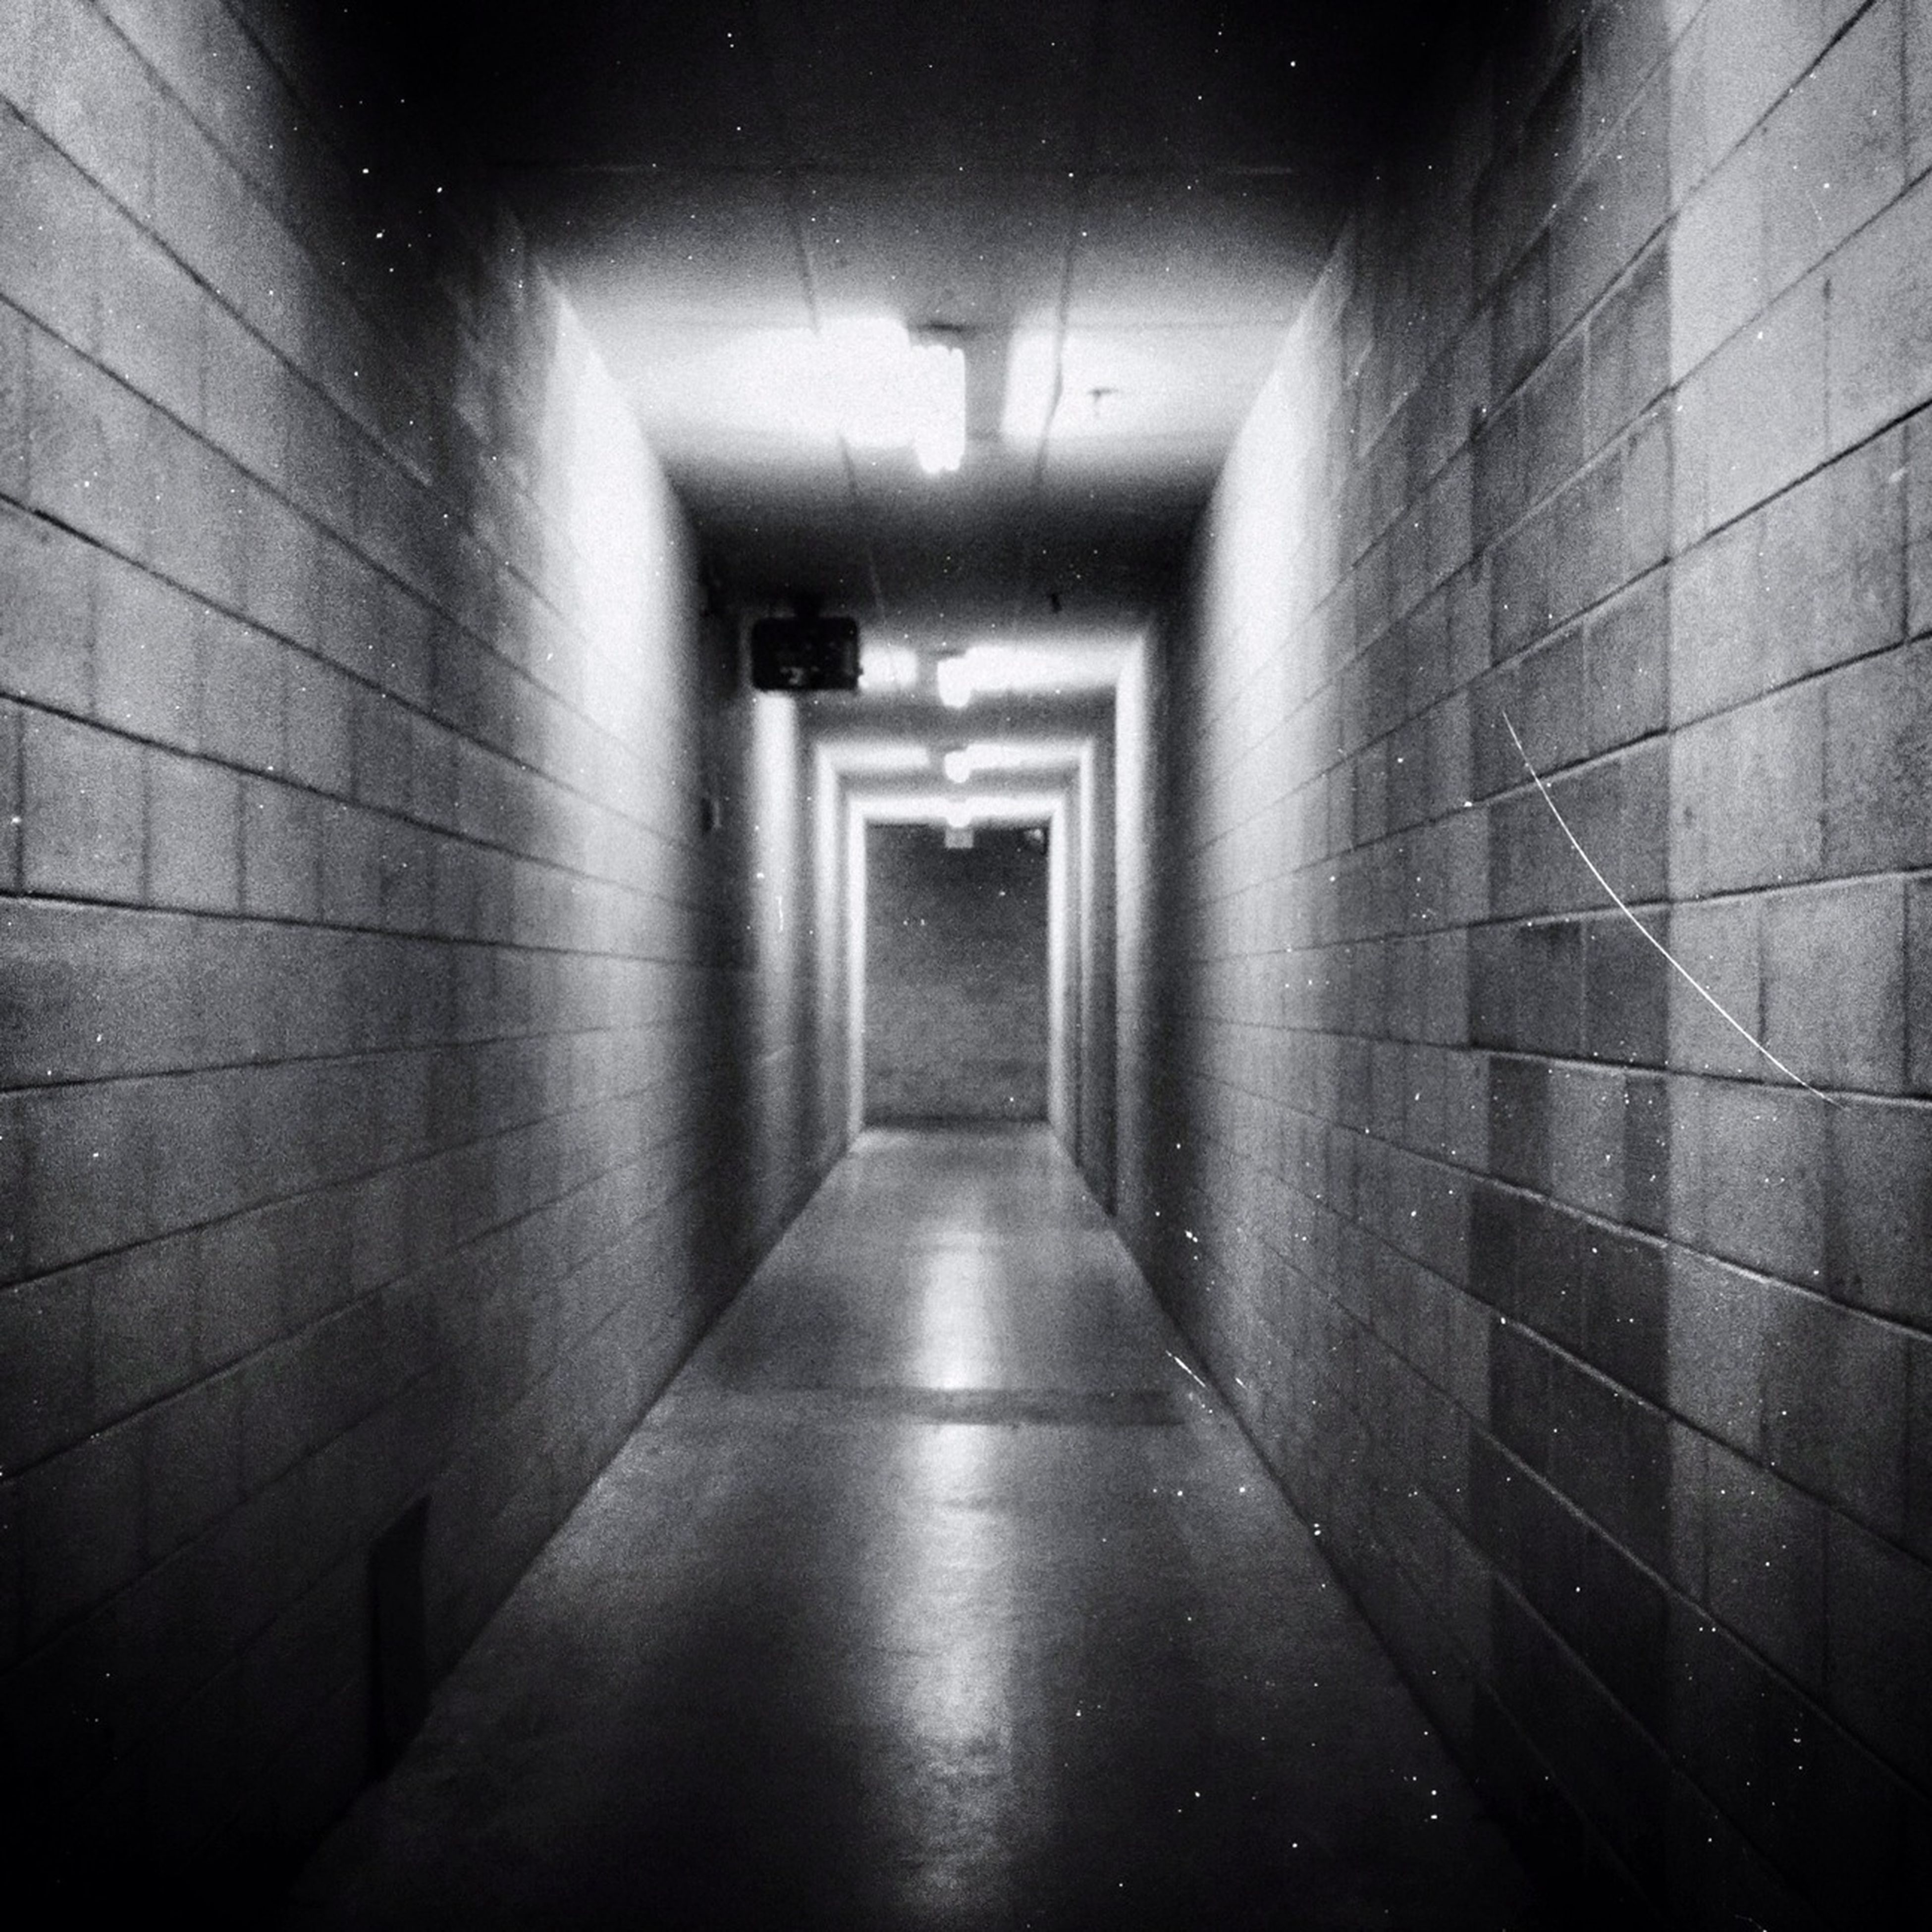 architecture, built structure, indoors, the way forward, corridor, wall - building feature, diminishing perspective, narrow, building, empty, illuminated, wall, building exterior, absence, lighting equipment, vanishing point, no people, walkway, long, tiled floor